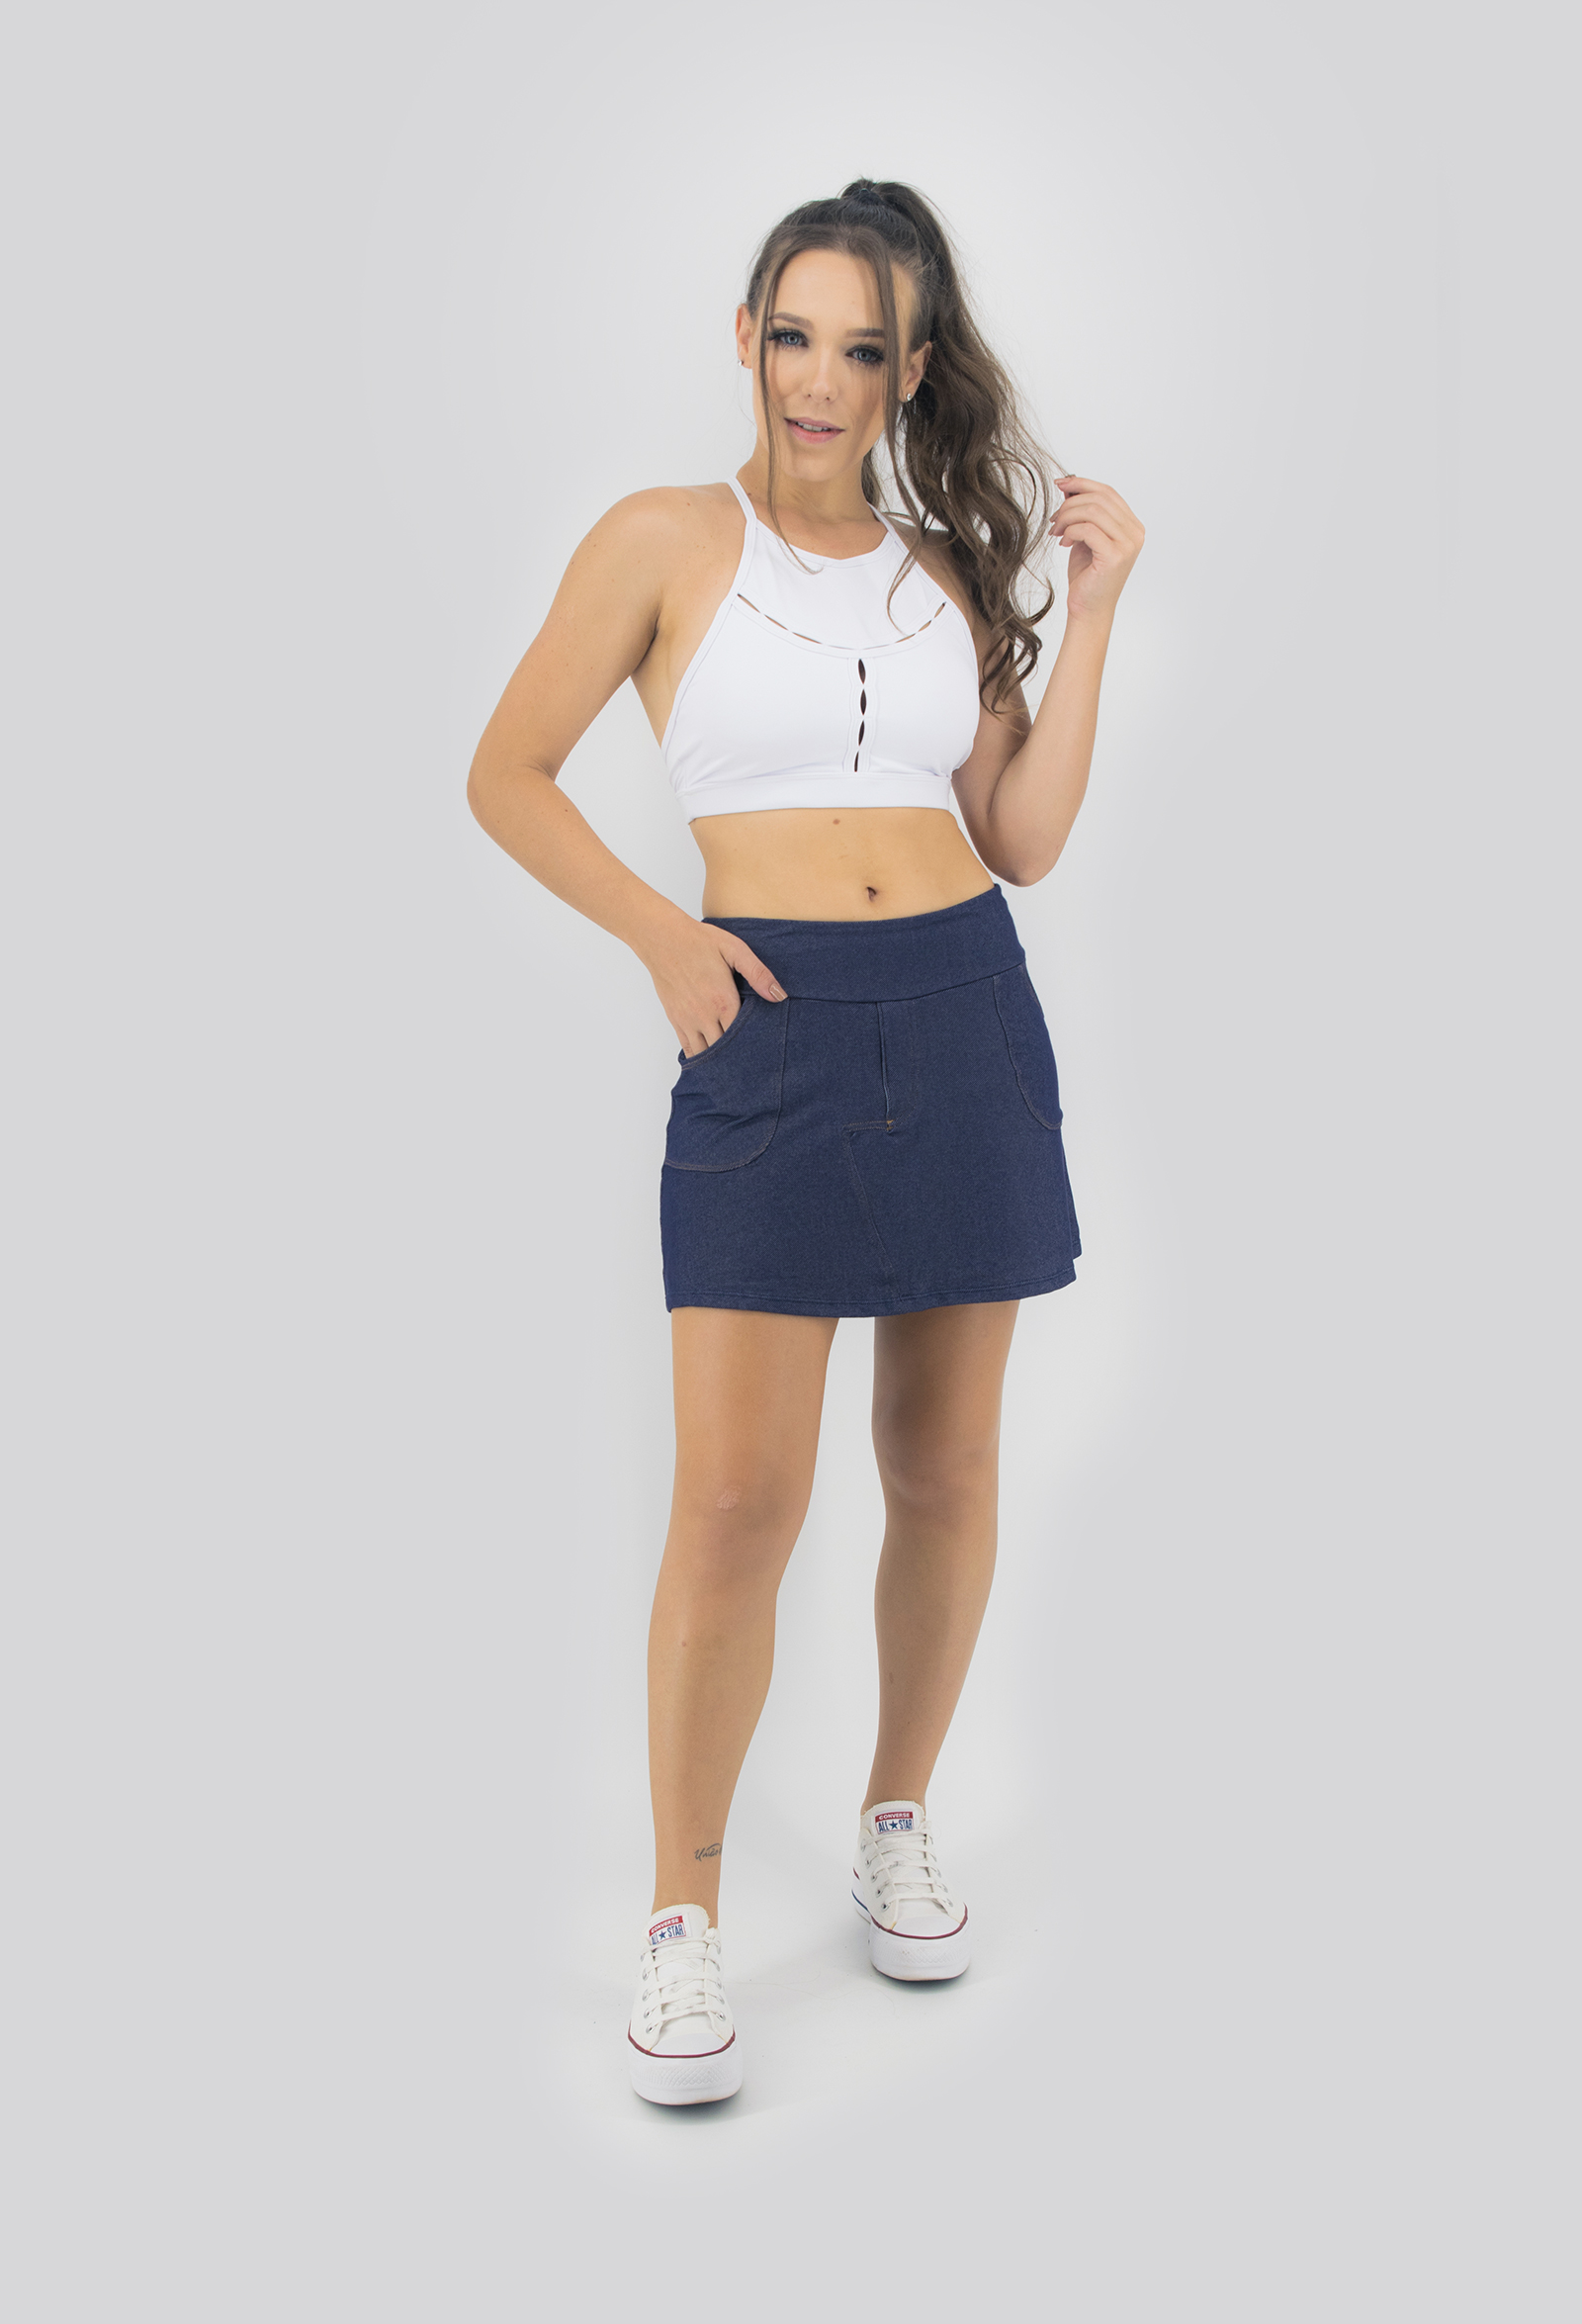 Cropped Only Branco, Coleção Move Your Body - NKT Fitwear Moda Fitness